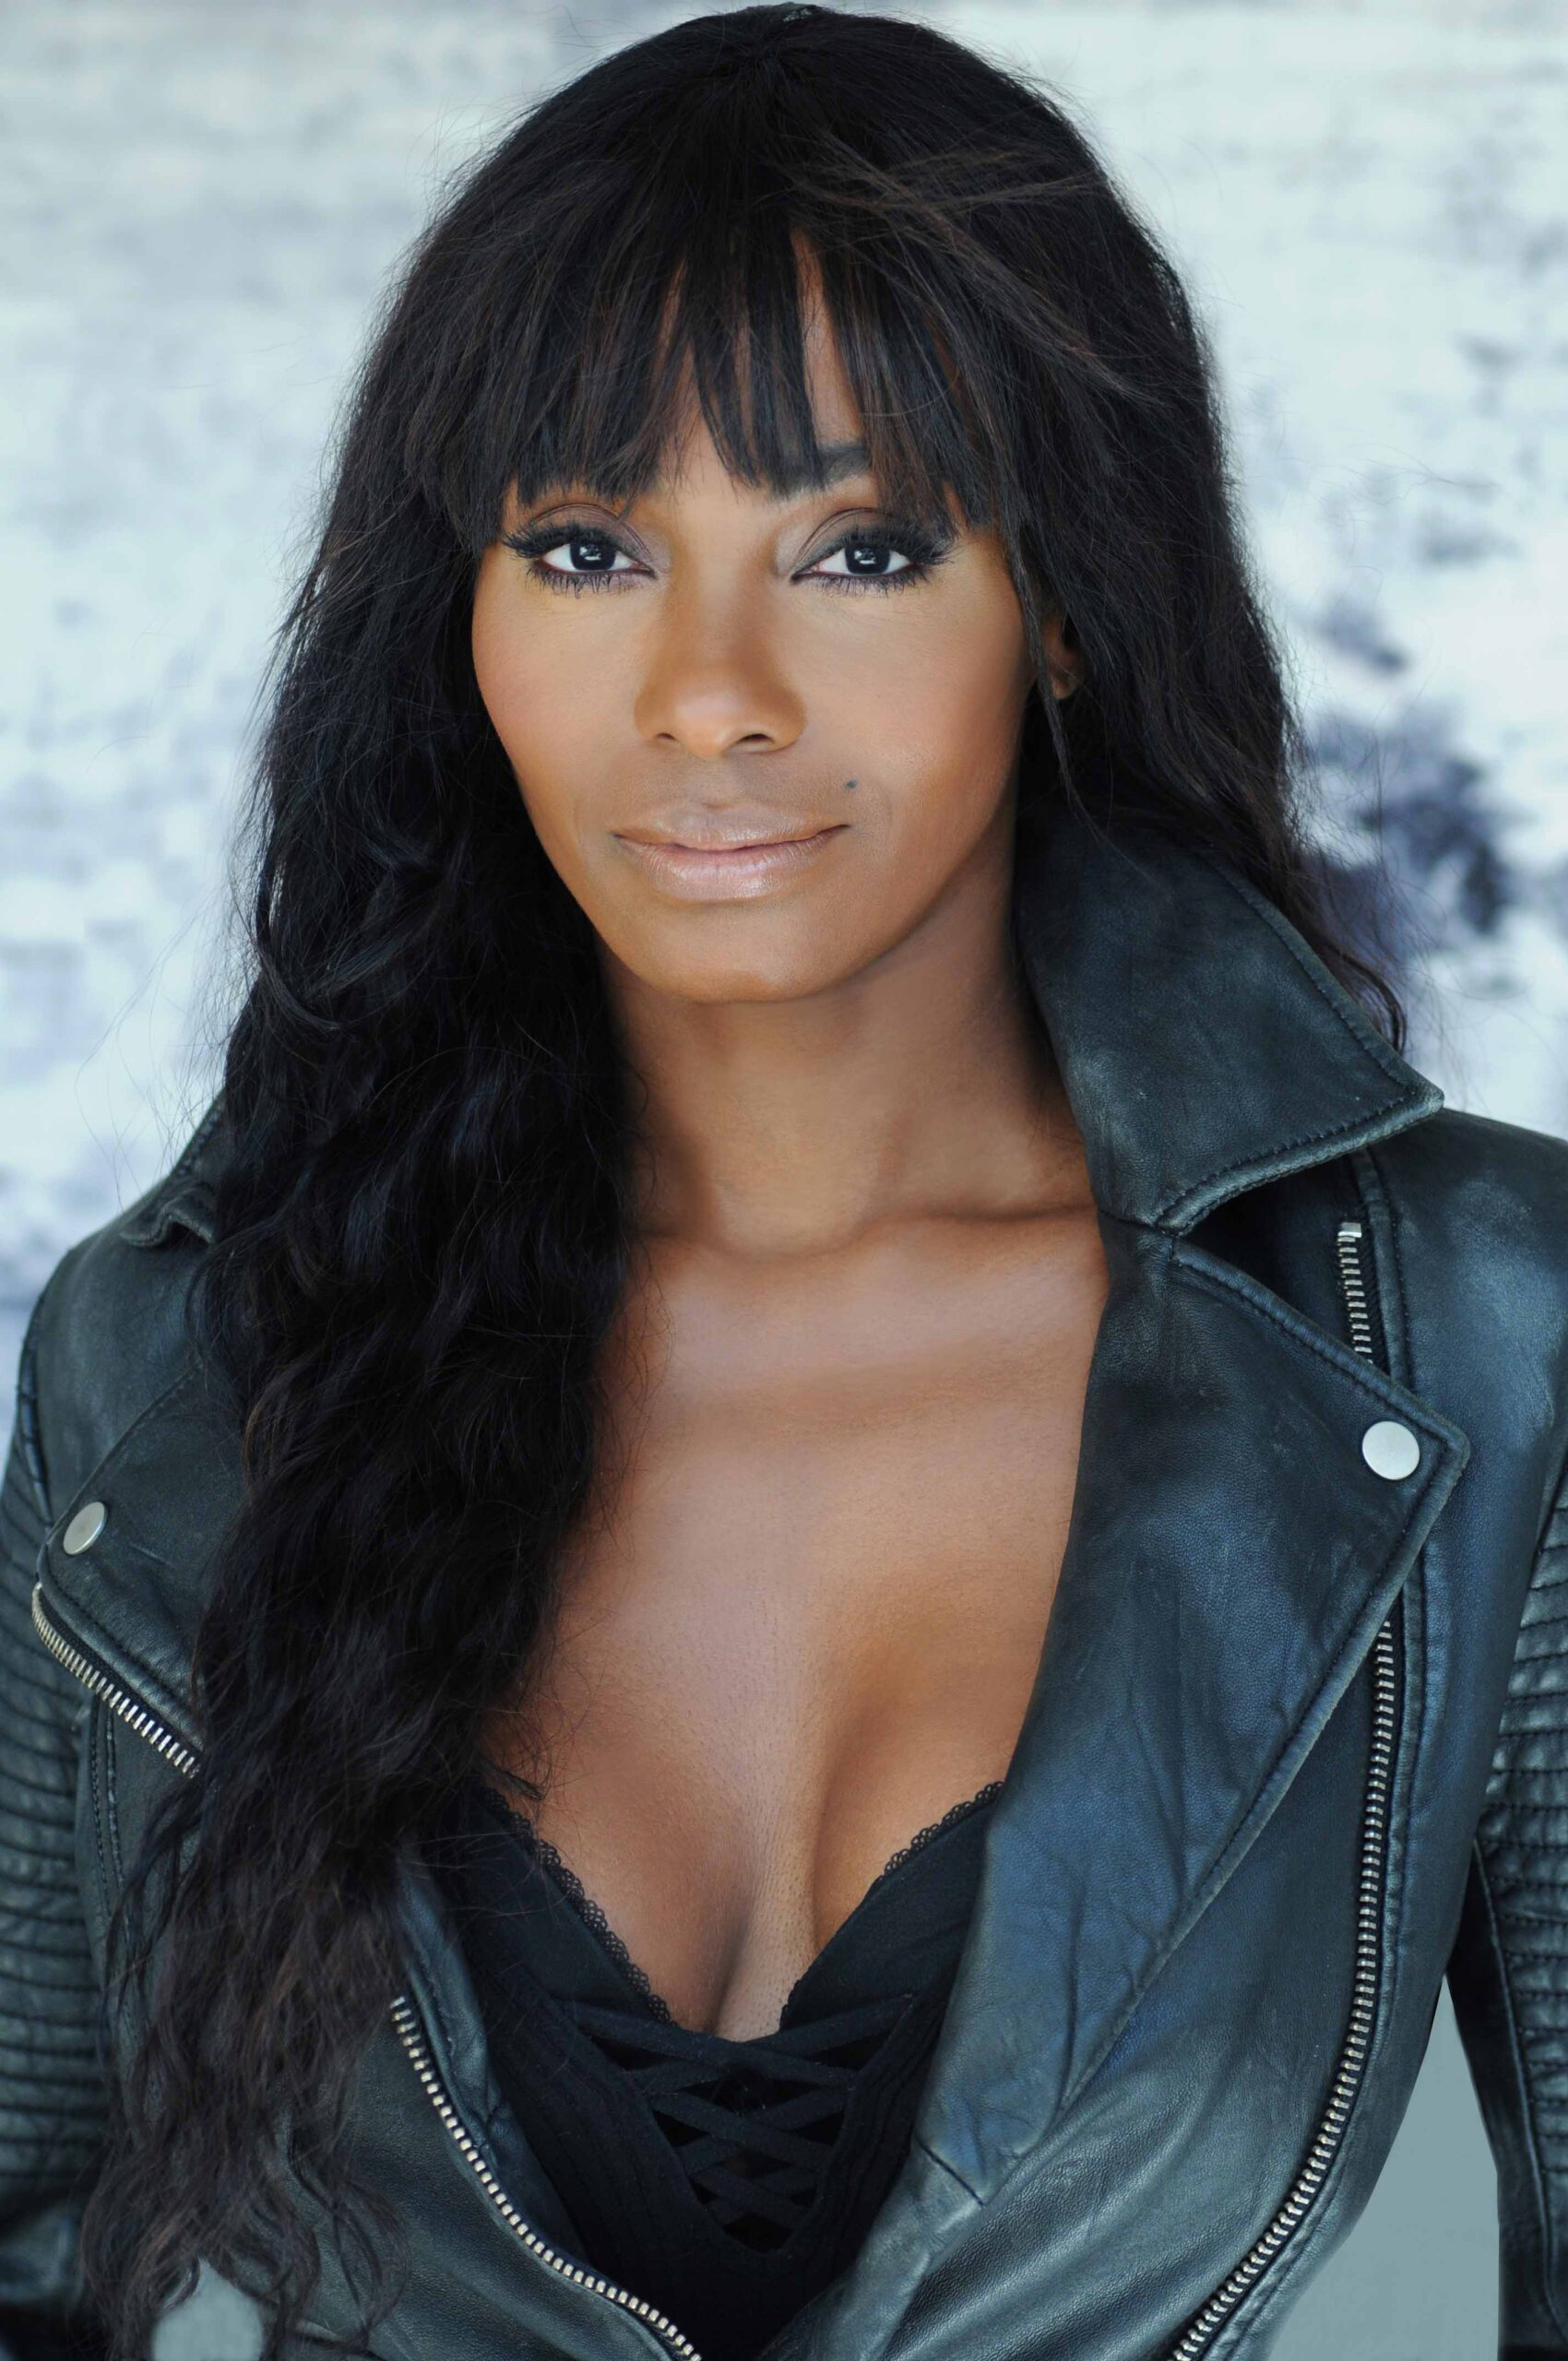 As the pandemic hit emergency levels, we heard different stories about the toll it took emotionally and physically on our fellow humans. We want to share the latest interview of actress and humanitarian Keturah Hamilton